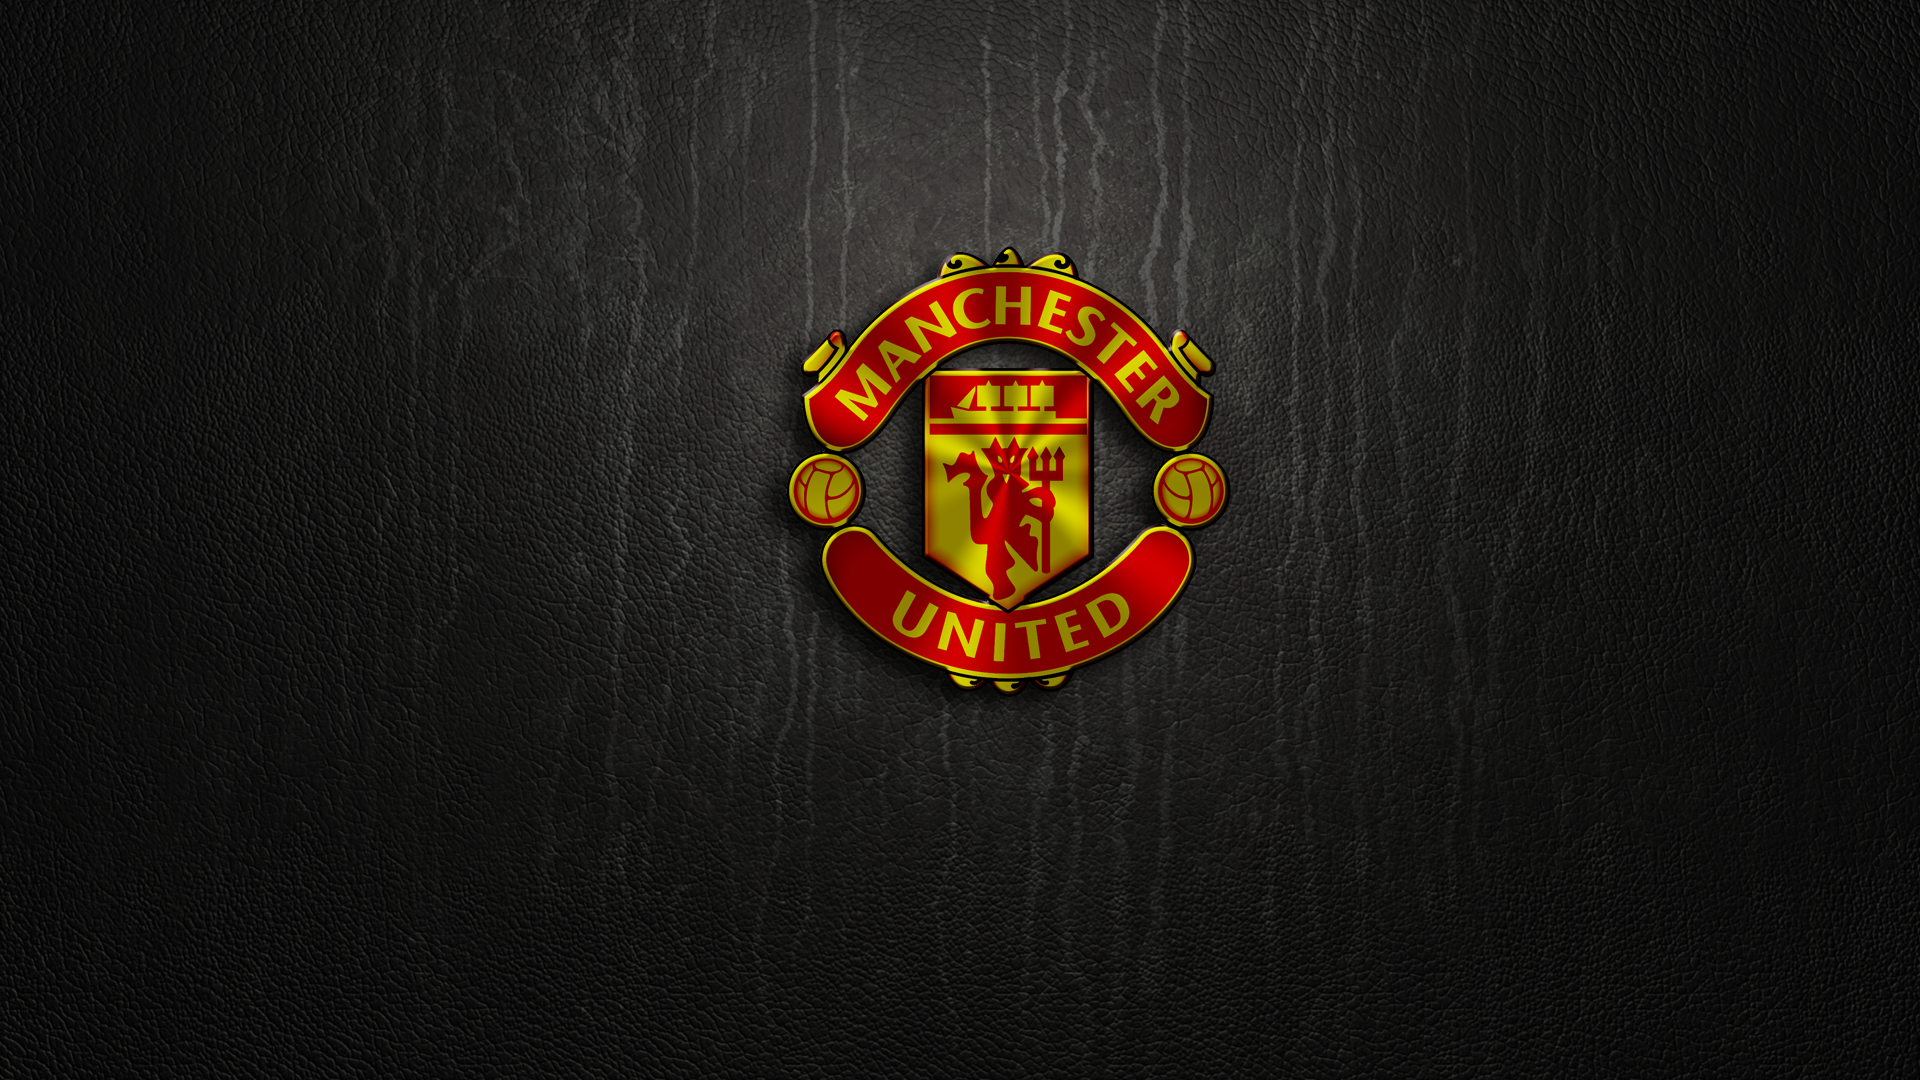 3D Manchester United HD Wallpaper 481 SongiadaPro One Pride 1920x1080